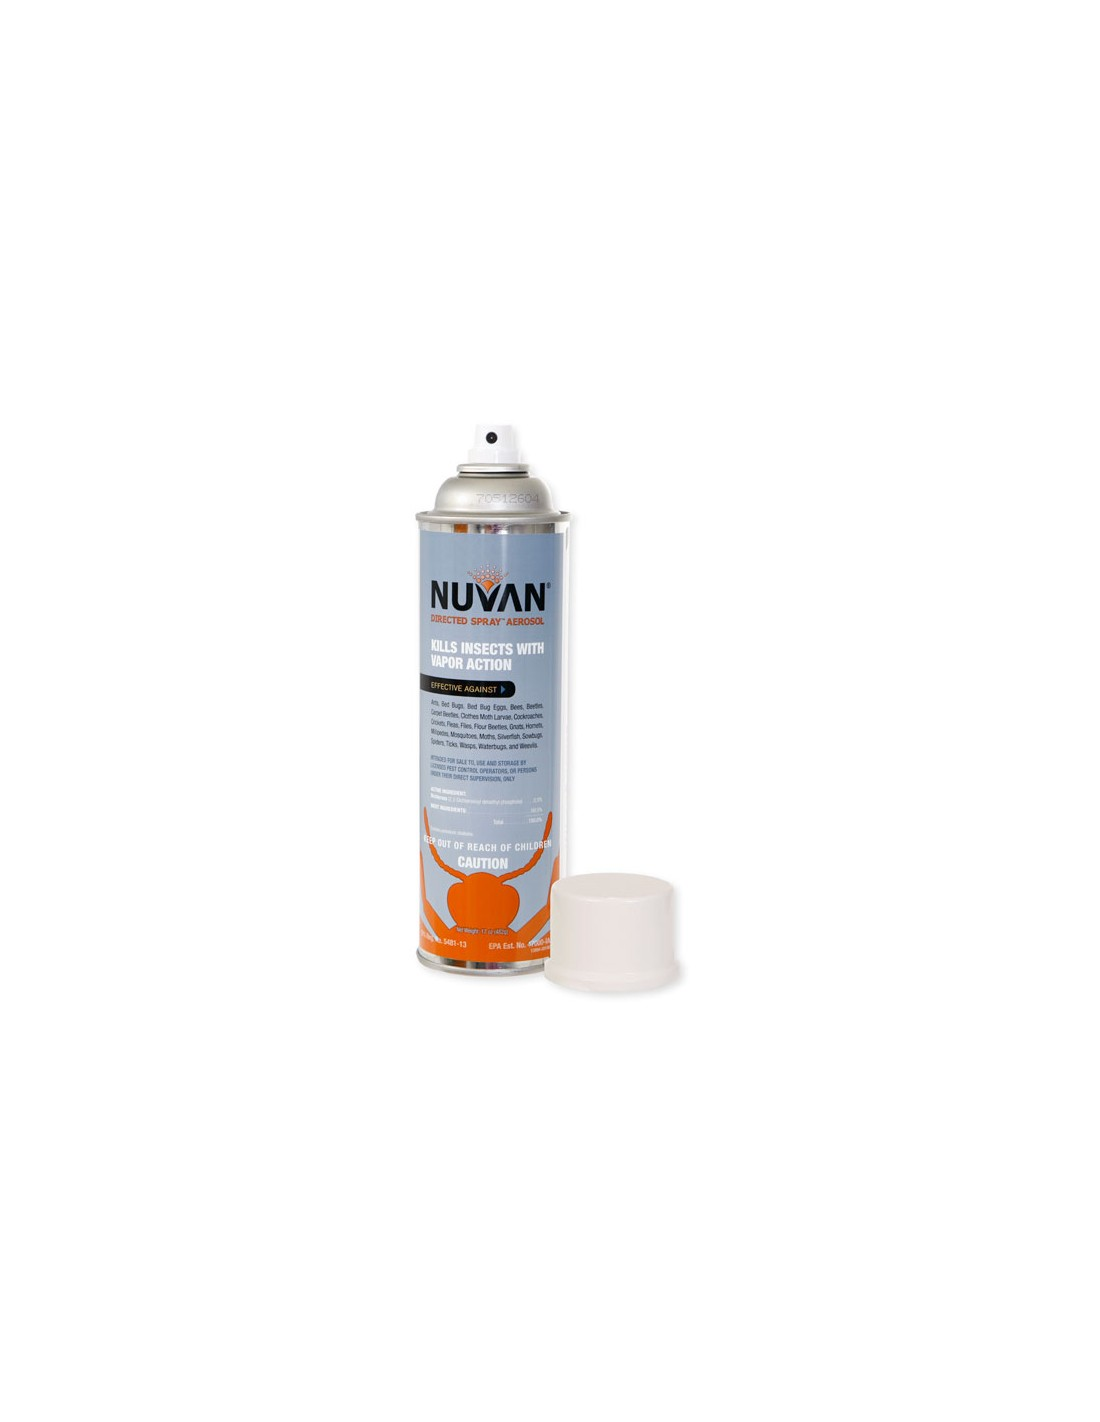 I bought a can of Nuvan spray and it still full and wont spray can i send it back for a new can